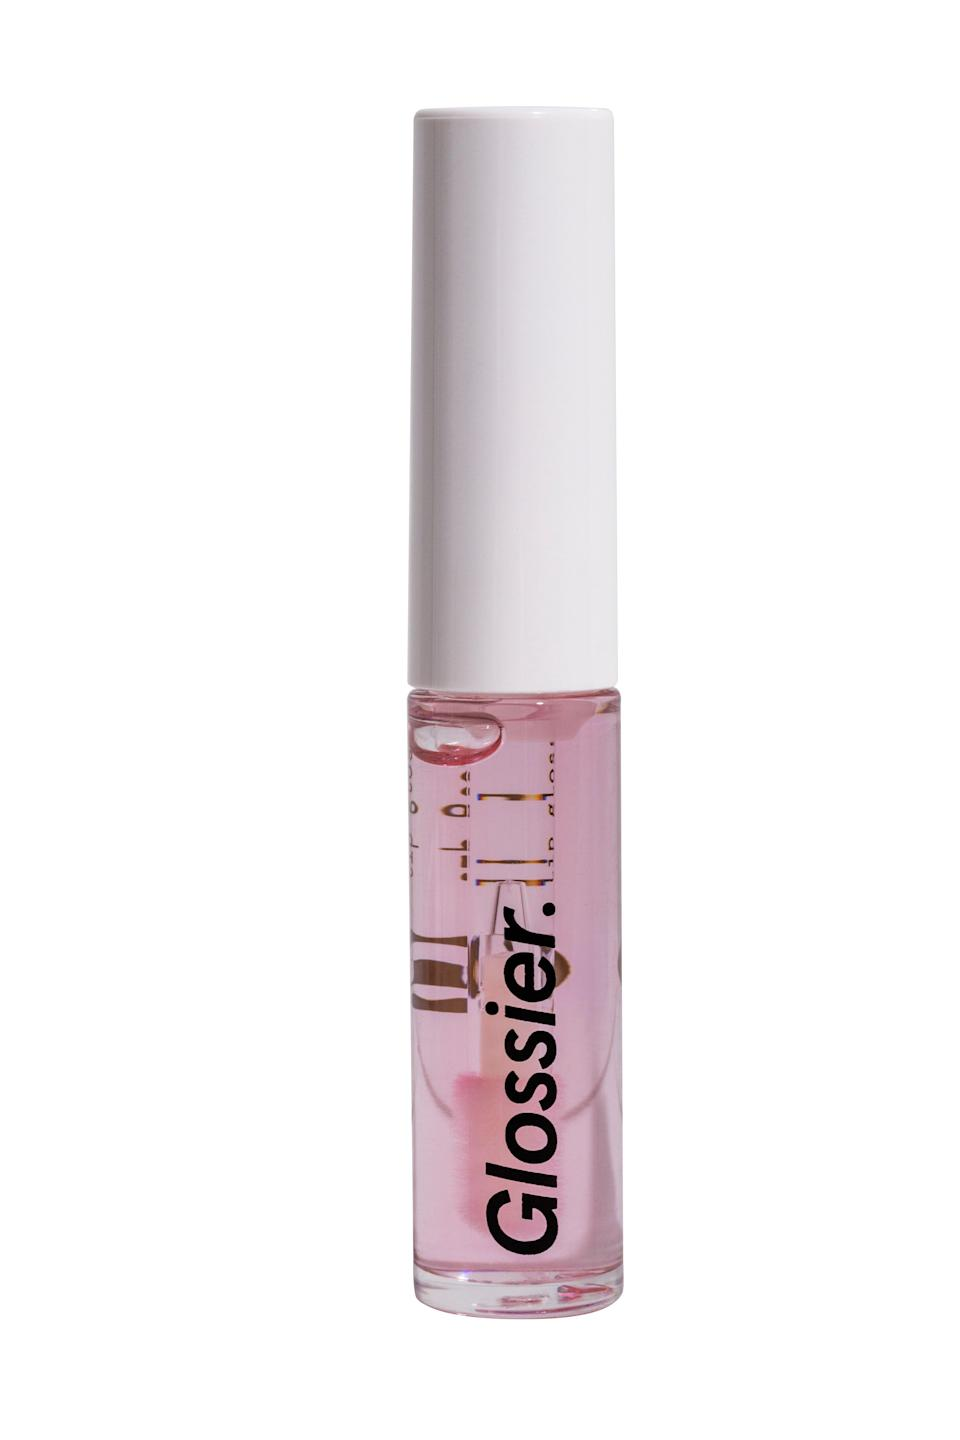 """<h3>Lip Gloss<br></h3> <br>A perfectly nice clear, non-sticky gloss that leaves lips hydrated and adds just the right amount of sexy sheen. It's not the most innovative, or the most affordable — but it does look good, so if you're committed to that aesthetically-pleasing Glossier lifestyle, this is one tube you'll probably want to keep at your desk for any Instagram opportunities.<br><br><strong>Glossier</strong> Lip Gloss, $, available at <a href=""""https://go.skimresources.com/?id=30283X879131&url=https%3A%2F%2Fglossier.sjv.io%2FEgYjQ"""" rel=""""nofollow noopener"""" target=""""_blank"""" data-ylk=""""slk:Glossier"""" class=""""link rapid-noclick-resp"""">Glossier</a><br>"""